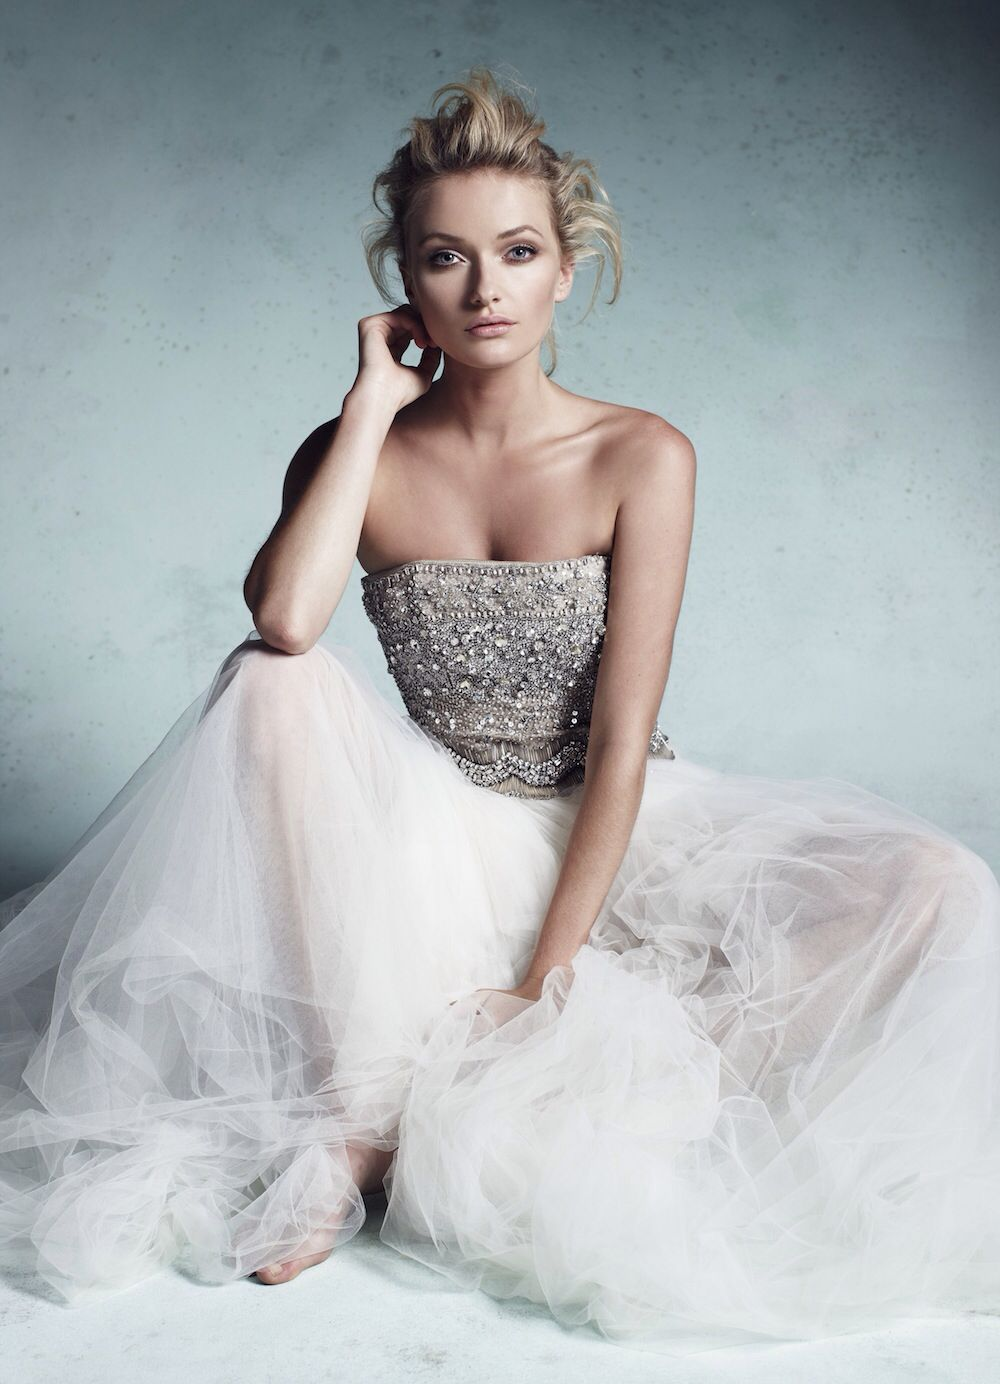 Collette dinnigan bridal closing down sale 30 50 off all styles collette dinnigan bridal closing down sale 30 50 off all styles in store ombrellifo Gallery